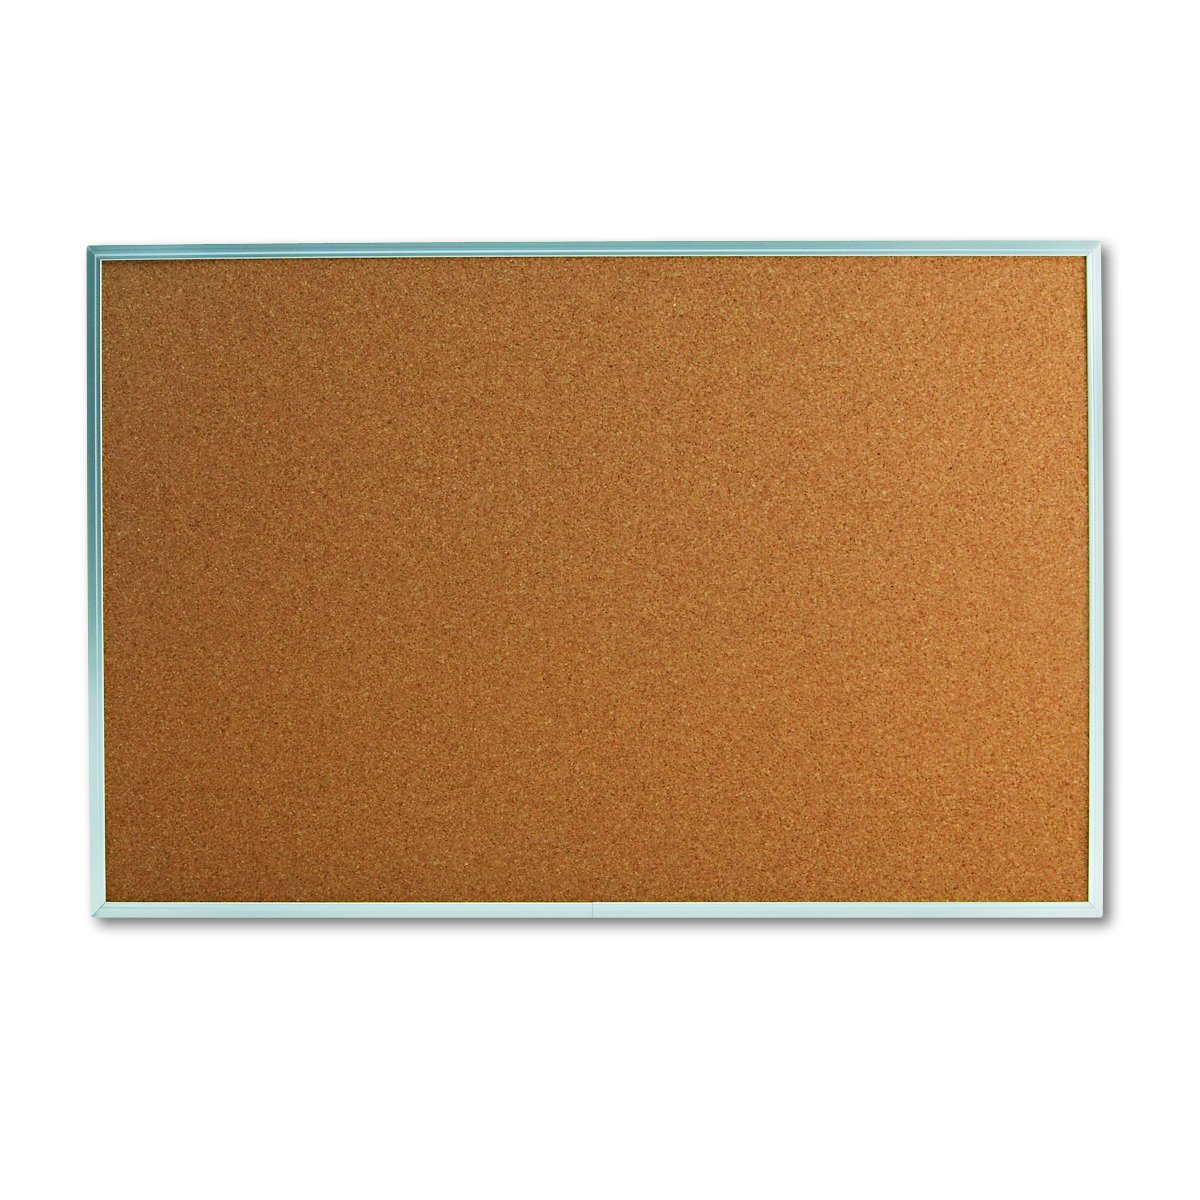 Universal 43613 Bulletin Board, Natural Cork, 36 x 24, Satin-Finished Aluminum Frame